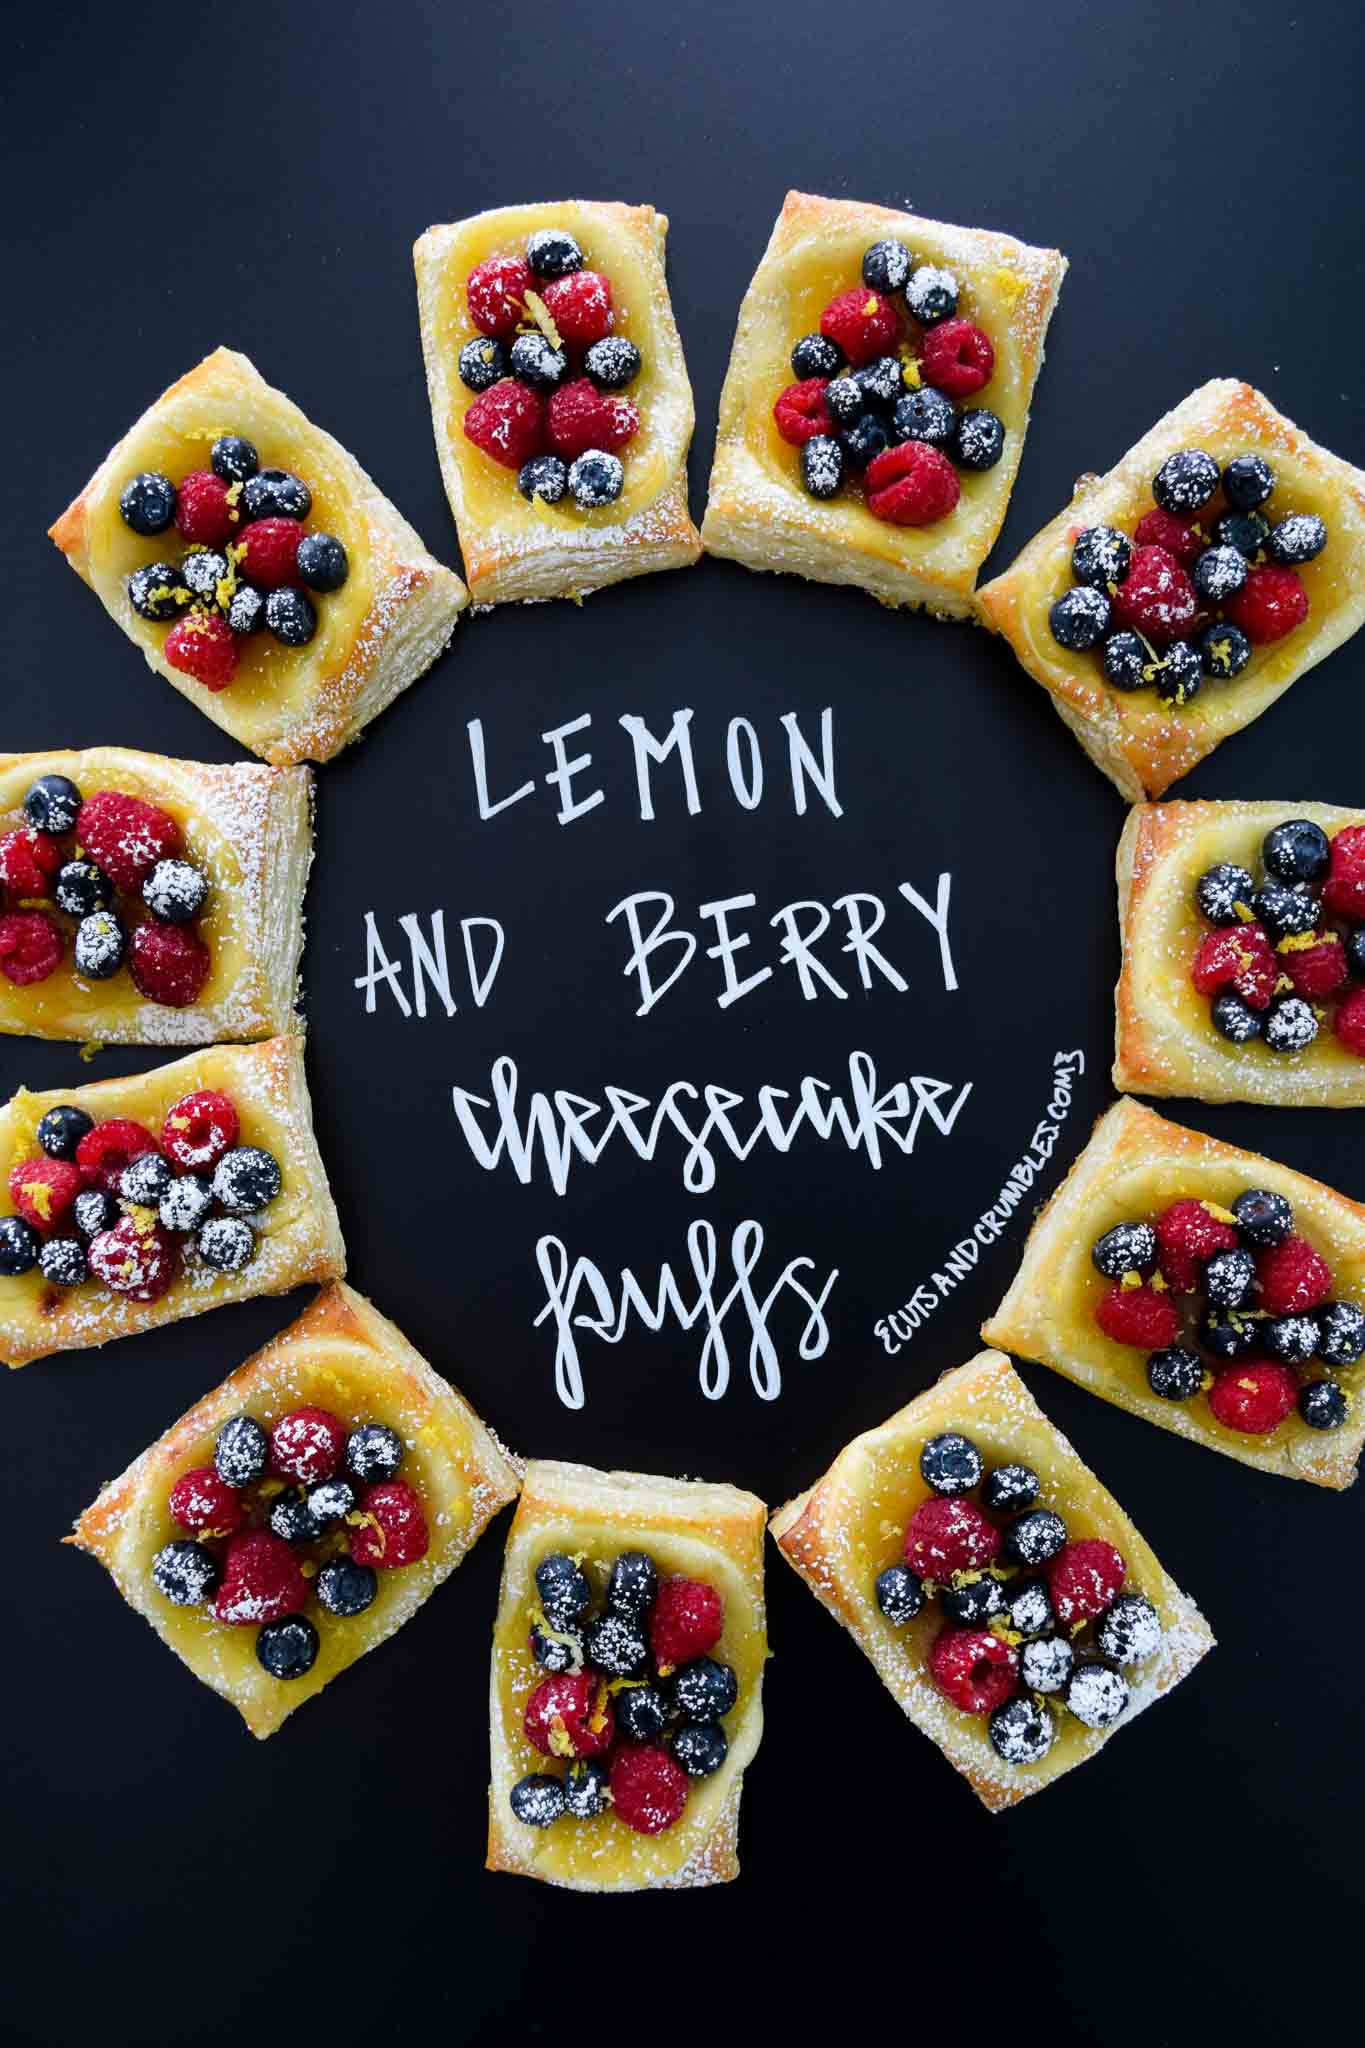 Lemon and Berry Cheesecake Puffs with title written on chalkboard